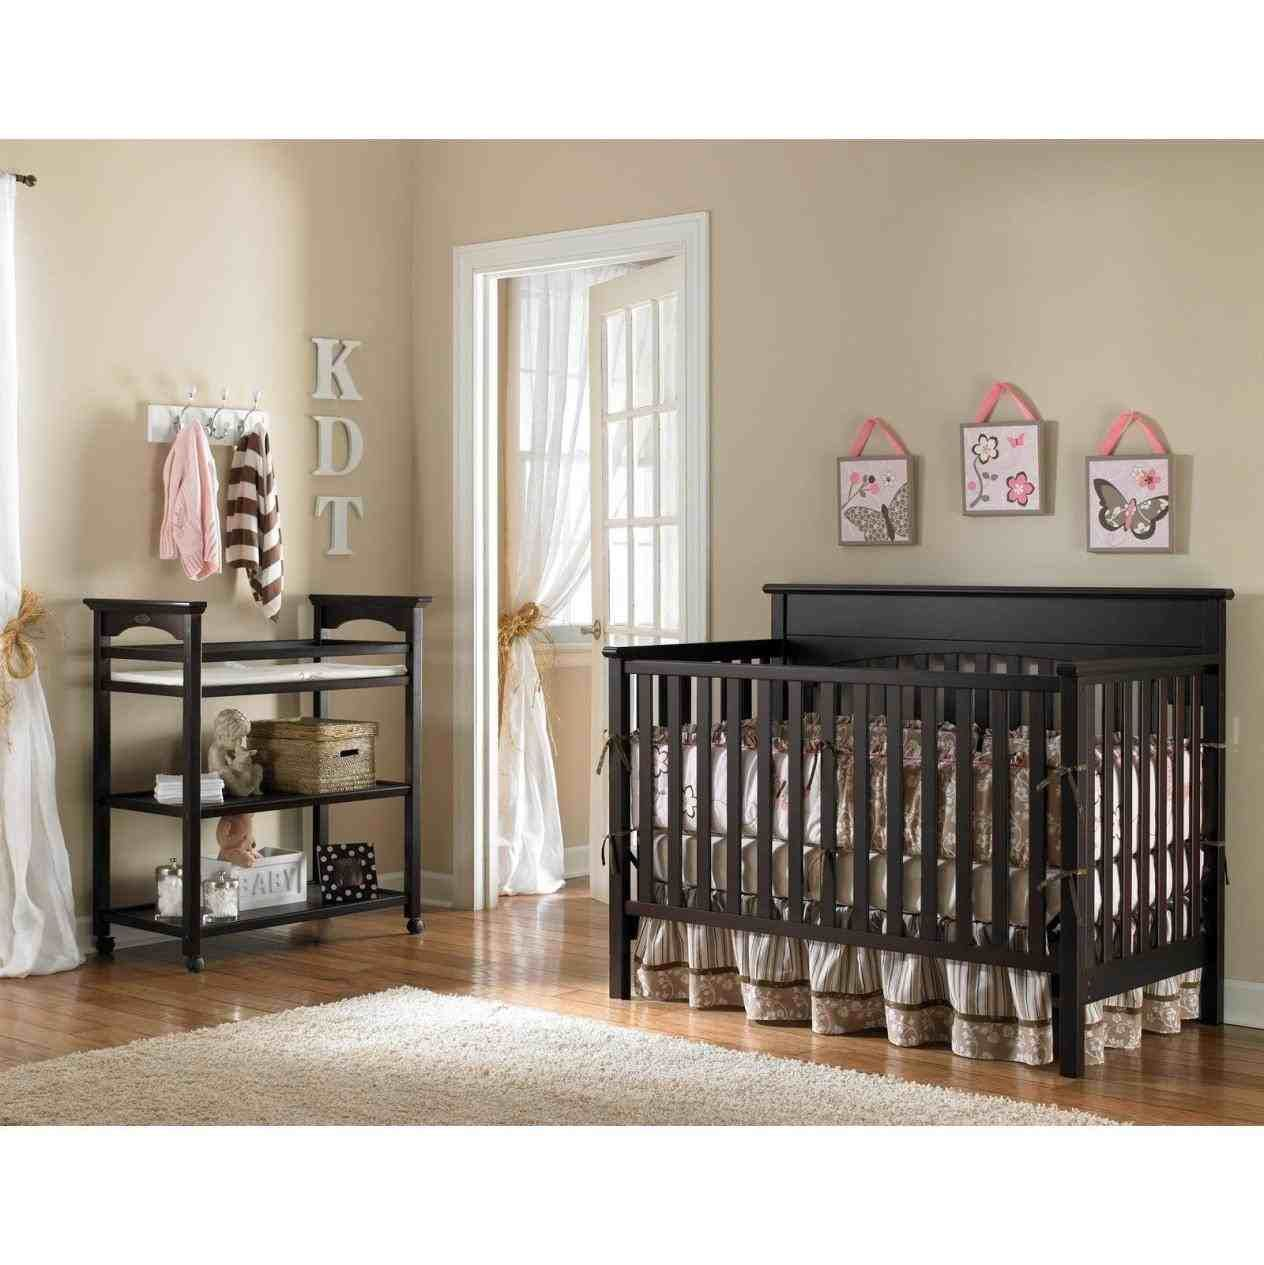 nursery serena babi baby dolce ideas target furniture collection cupboard best sets